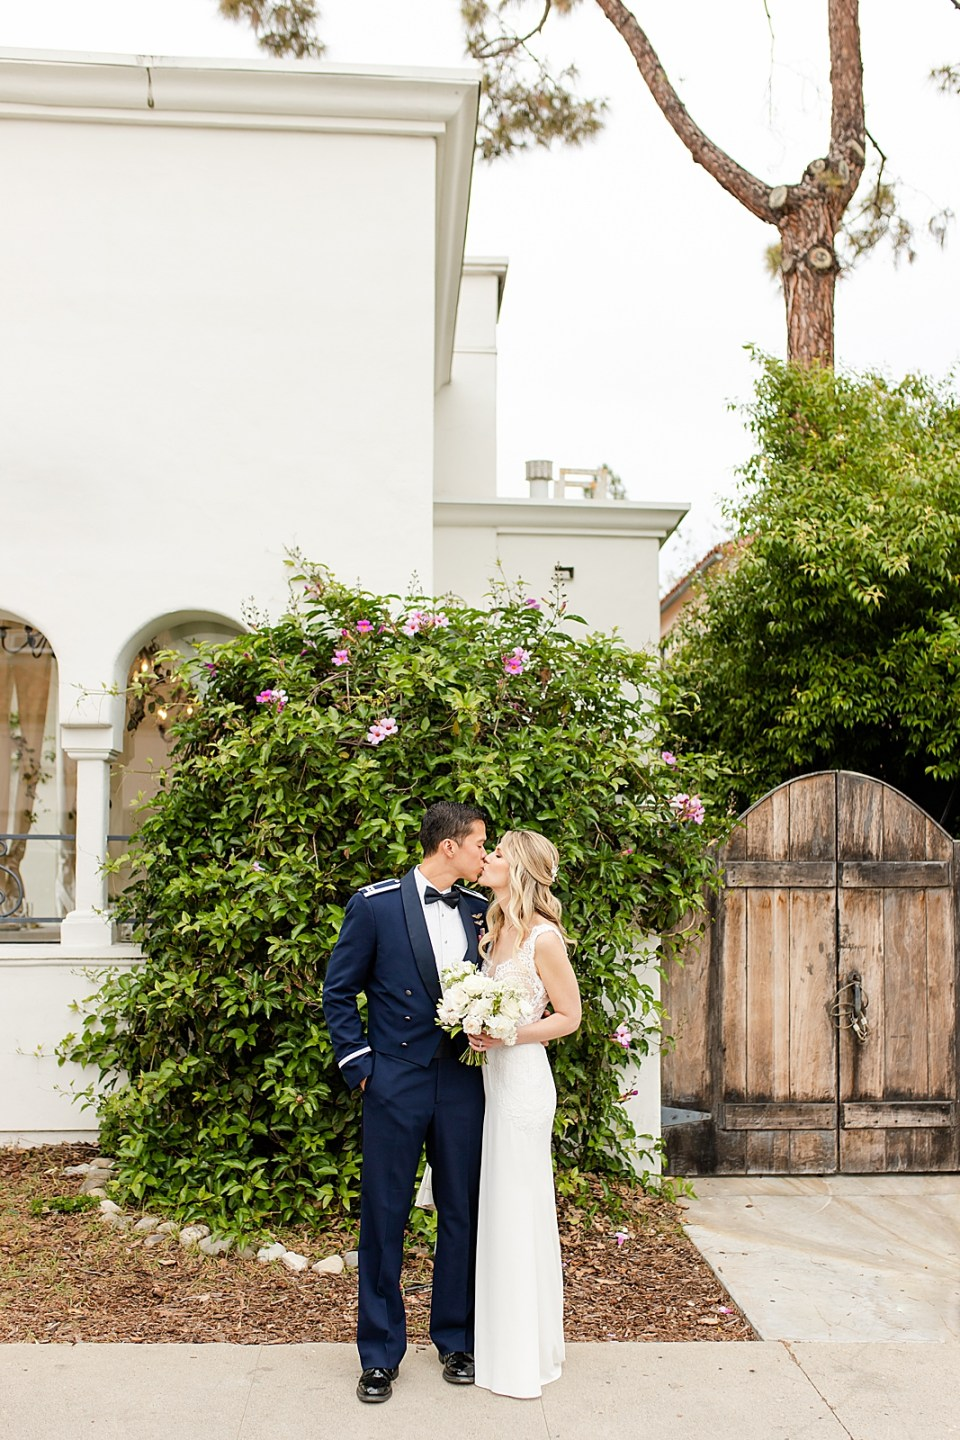 Angela & Kevan sharing a kiss outside their Villa & Vine Wedding venue.